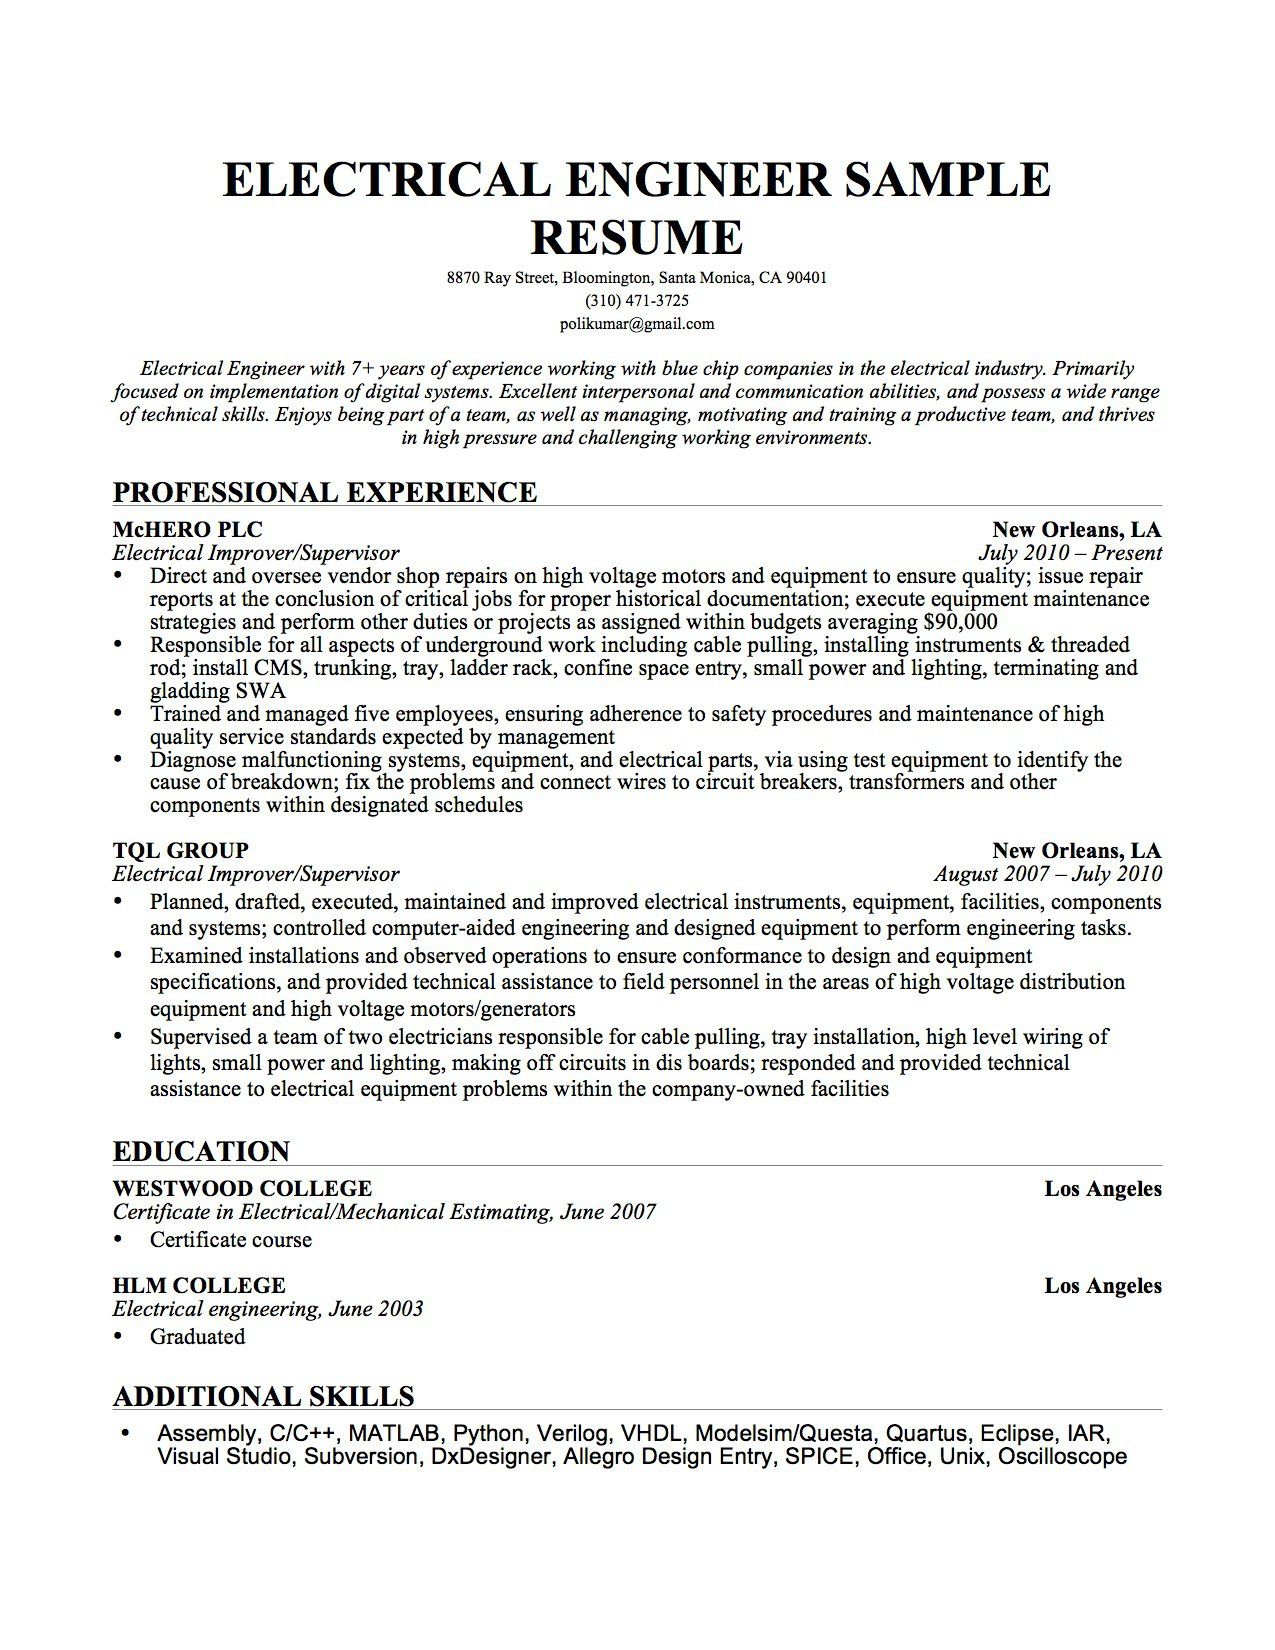 Resume Cover Letter For Engineering Resume engineering resume cover letter samplesfirst restore instance with no work save fragment android